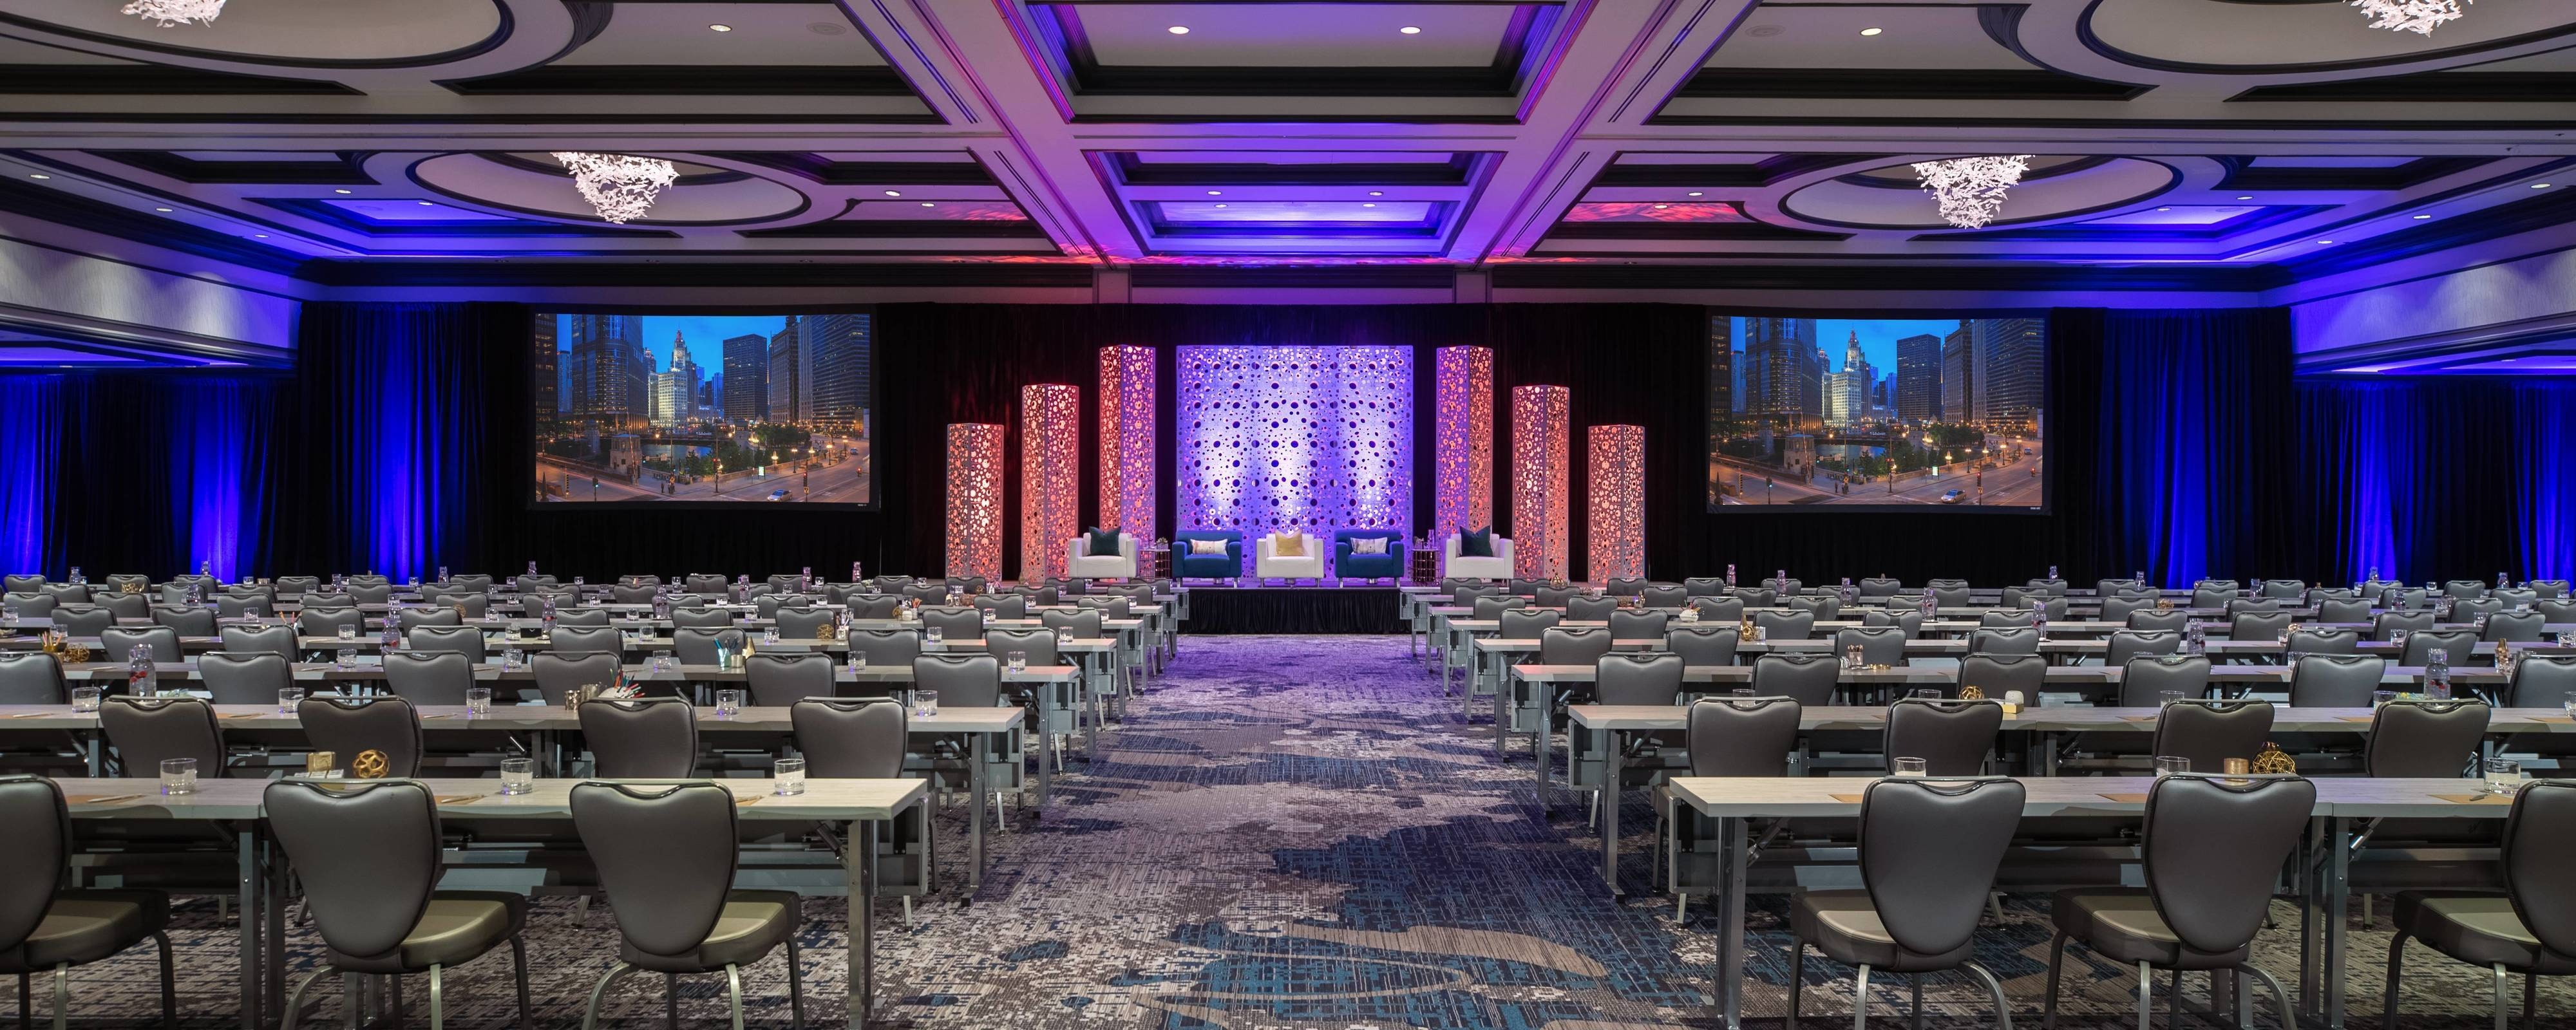 Chicago Hotel with Conference Rooms | Renaissance Chicago